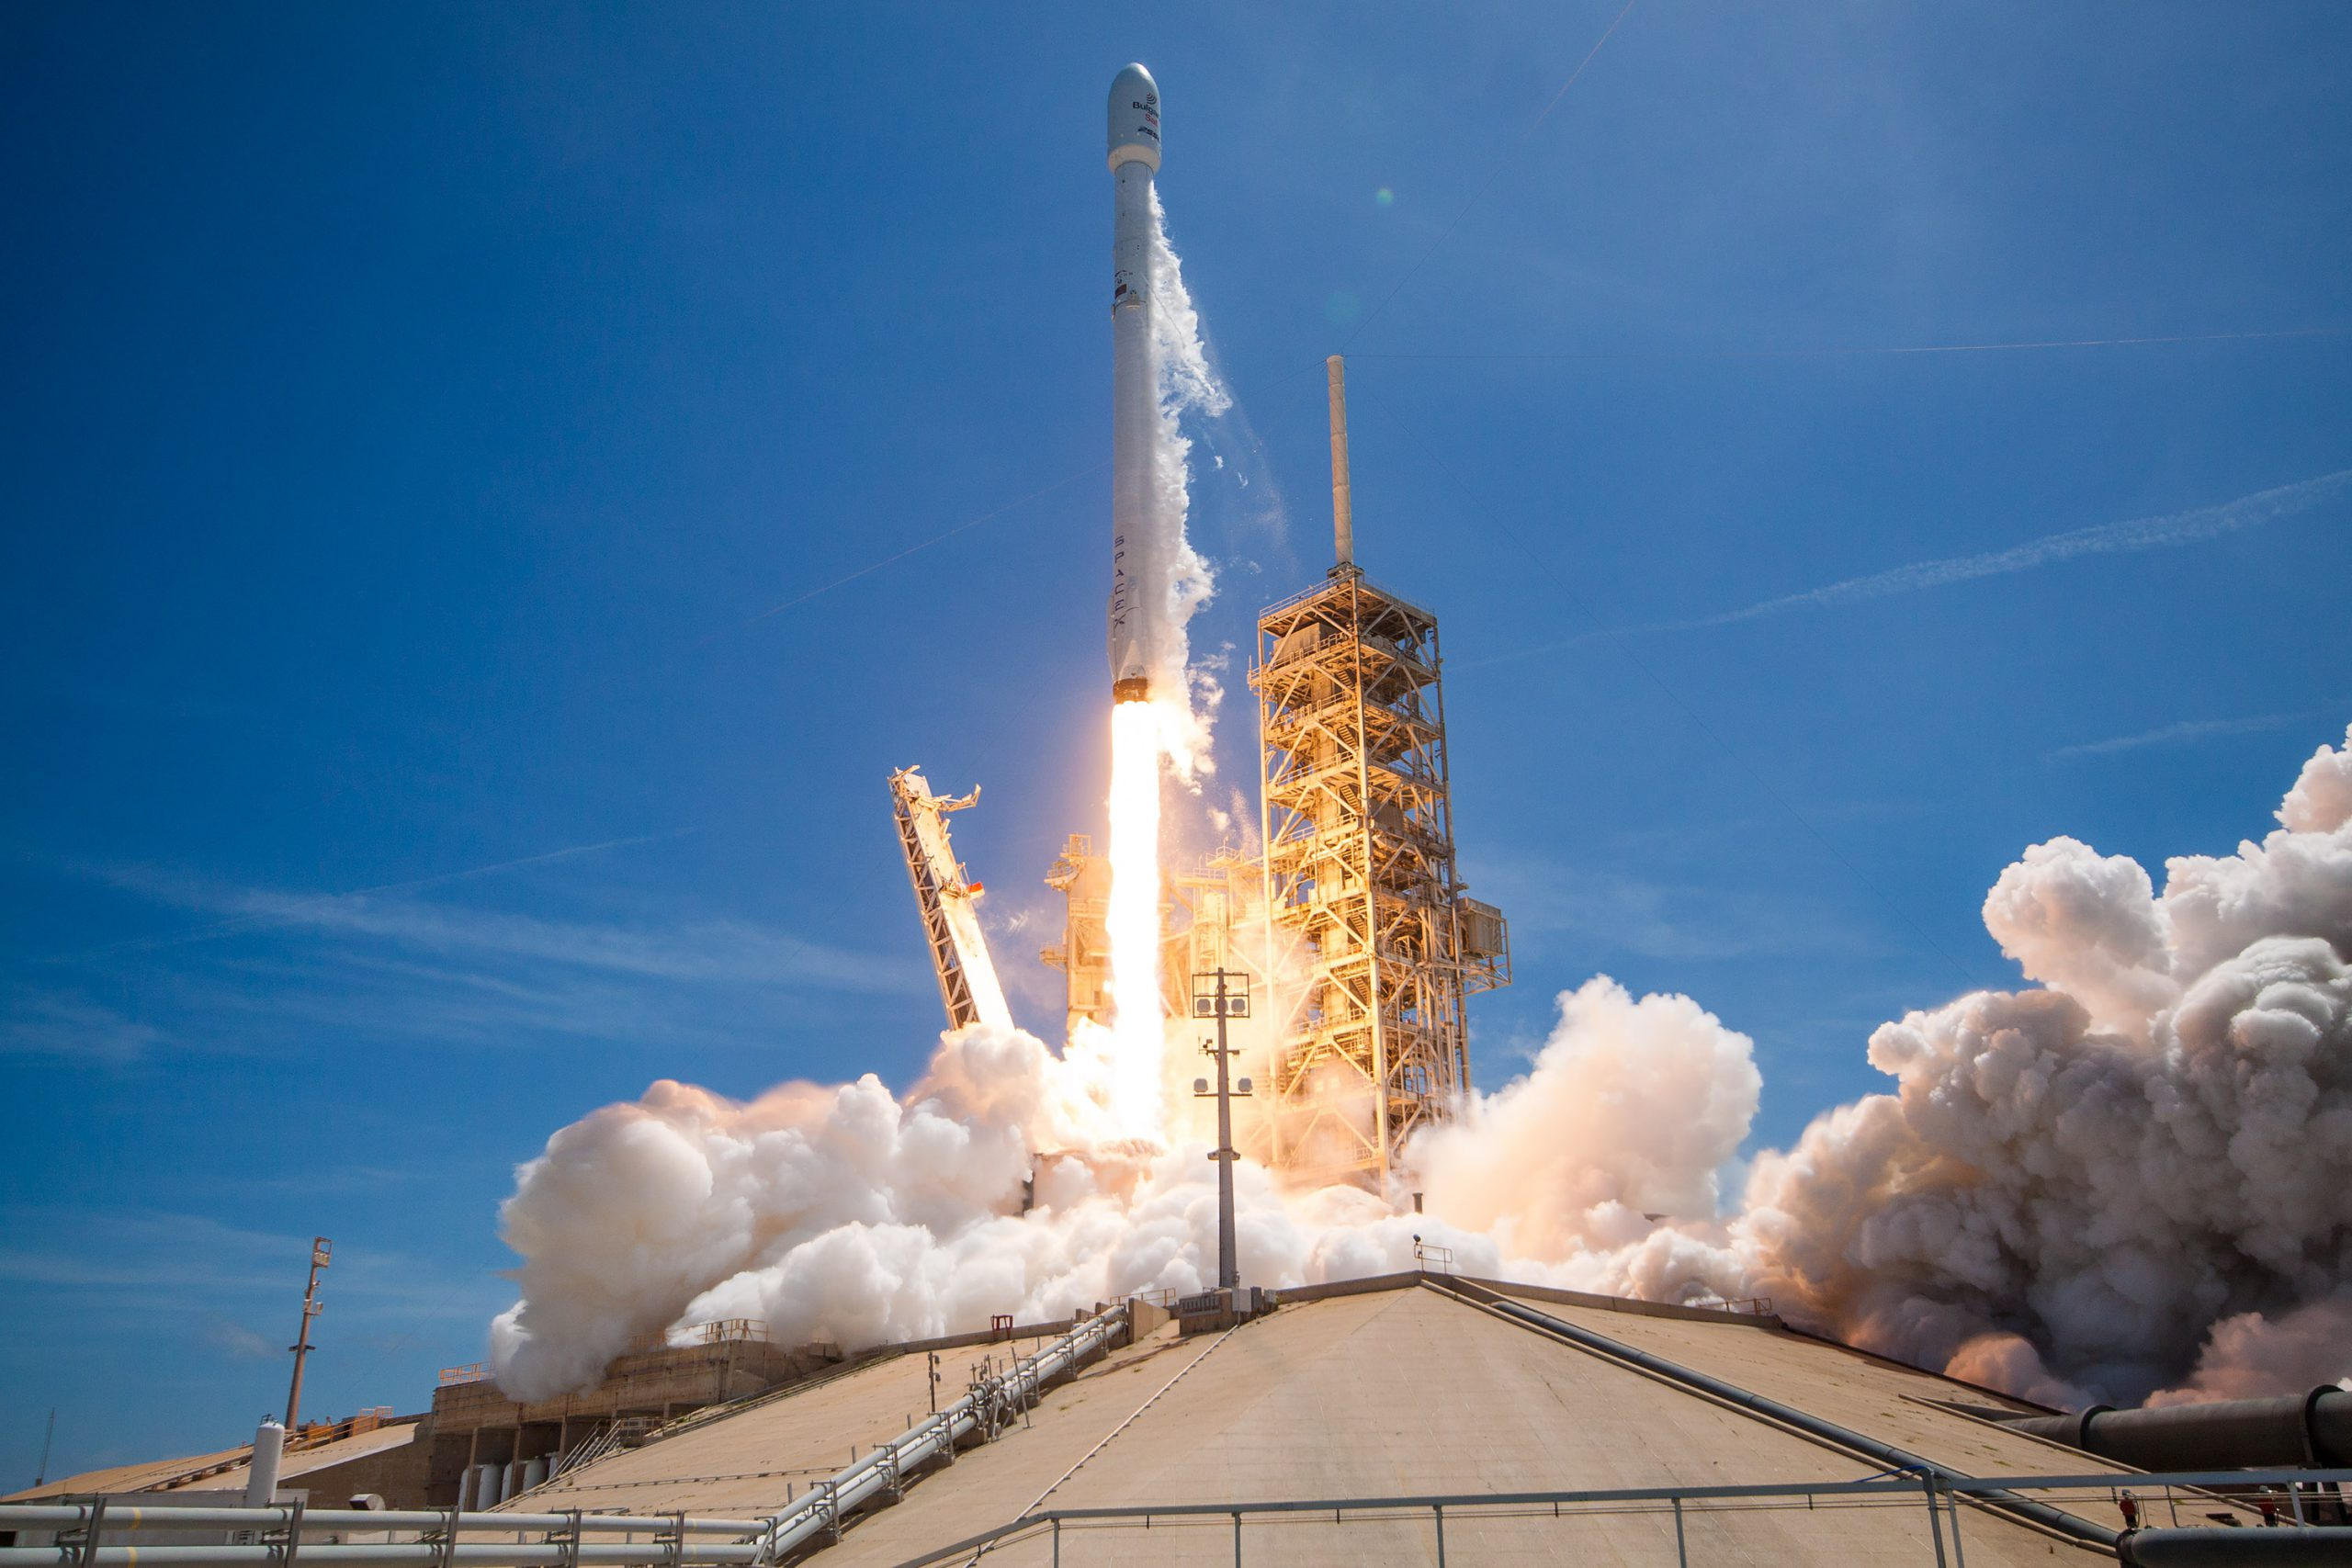 BulgariaSat-1 launched on a SpaceX Falcon 9 rocket